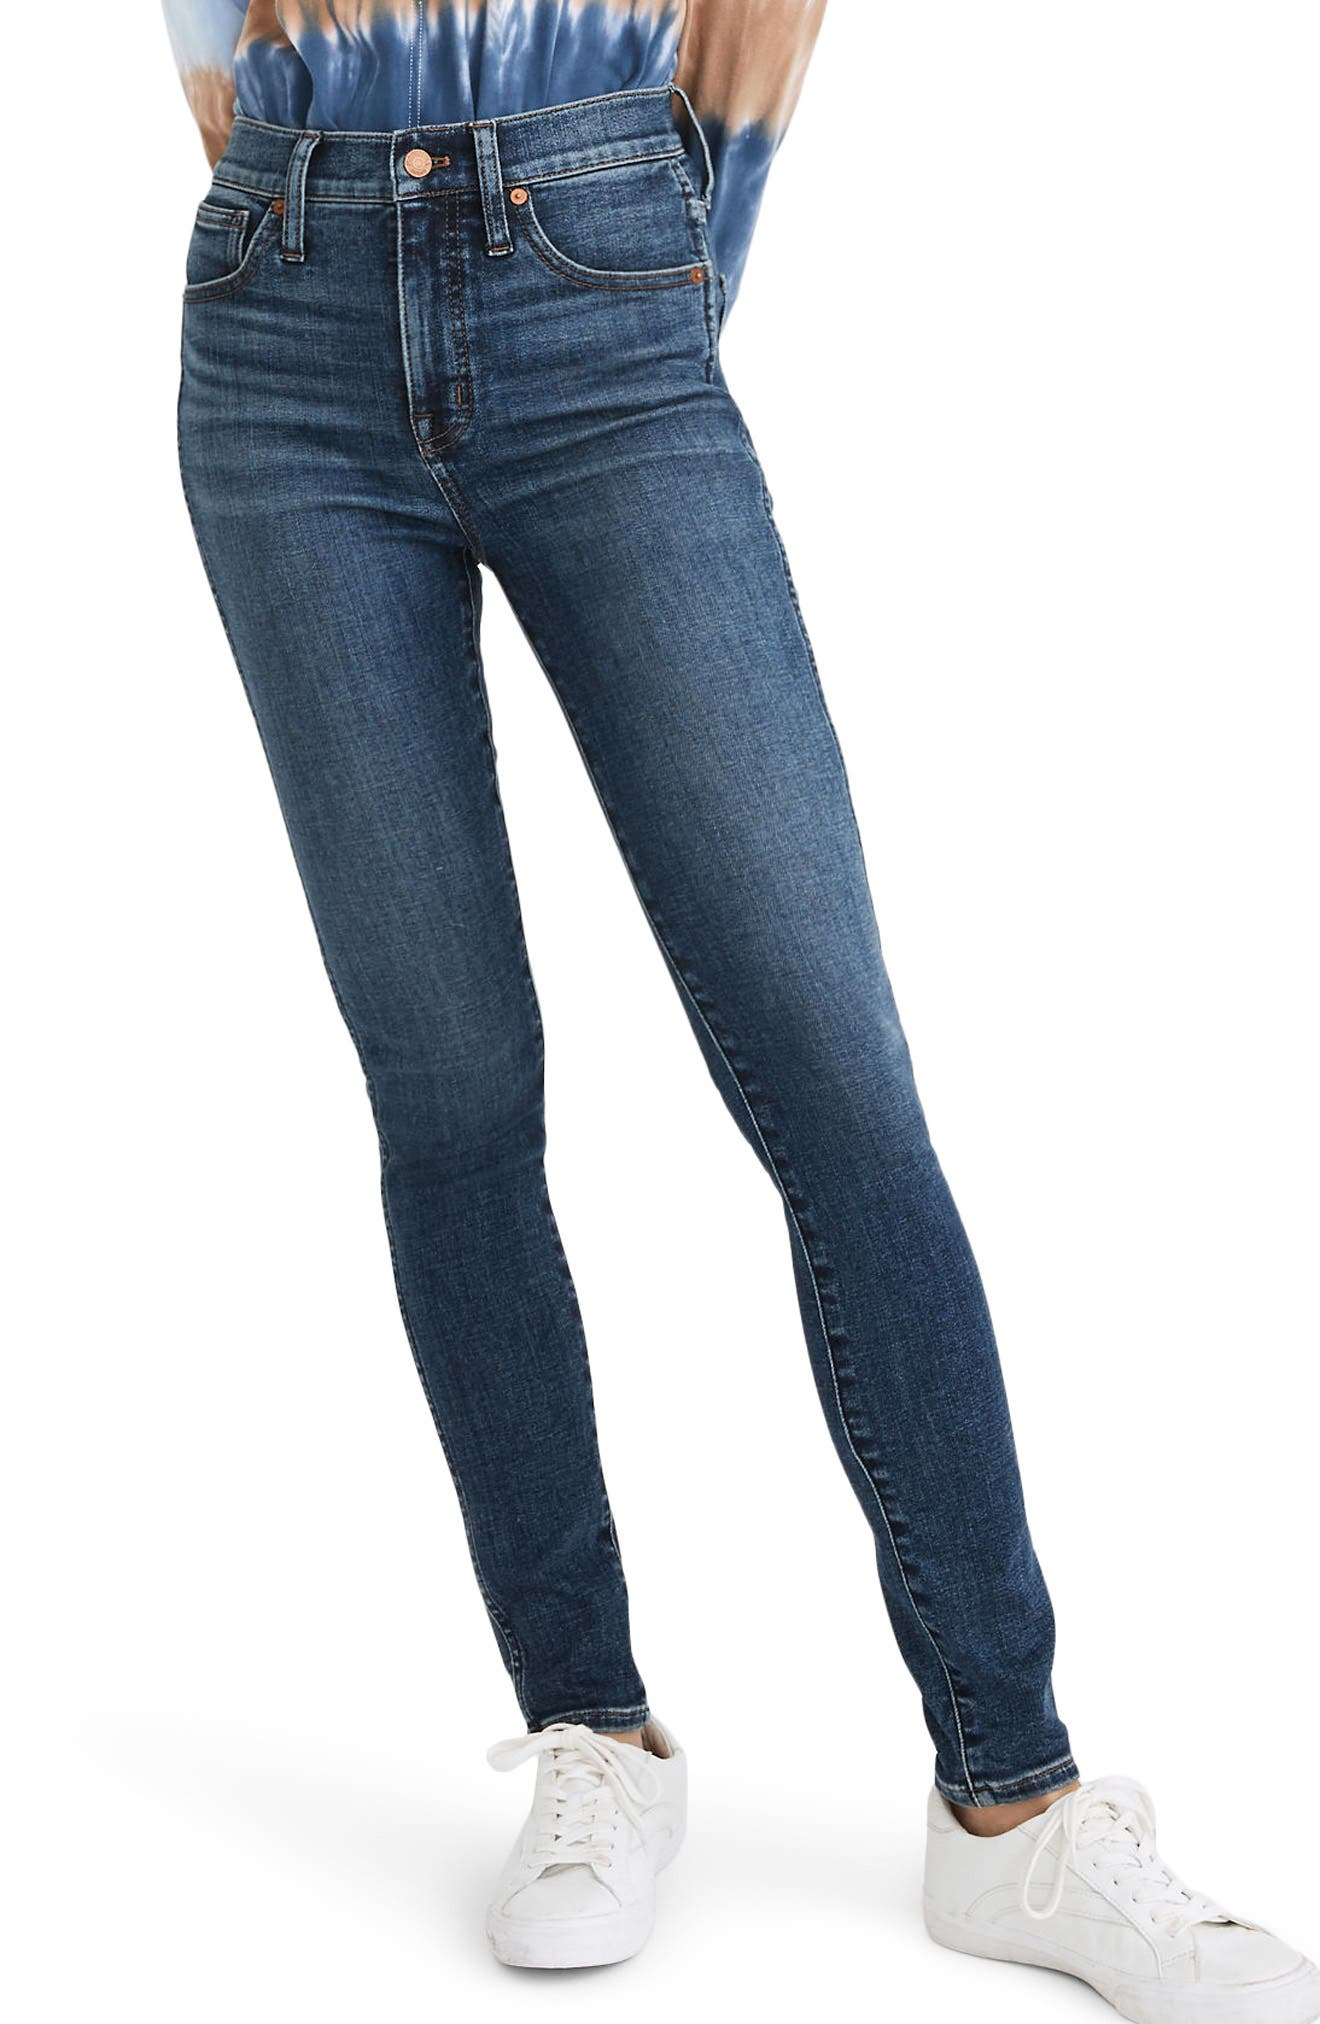 Madewell 10-Inch High Rise Ankle Skinny Jeans (Cordell)   Nordstrom